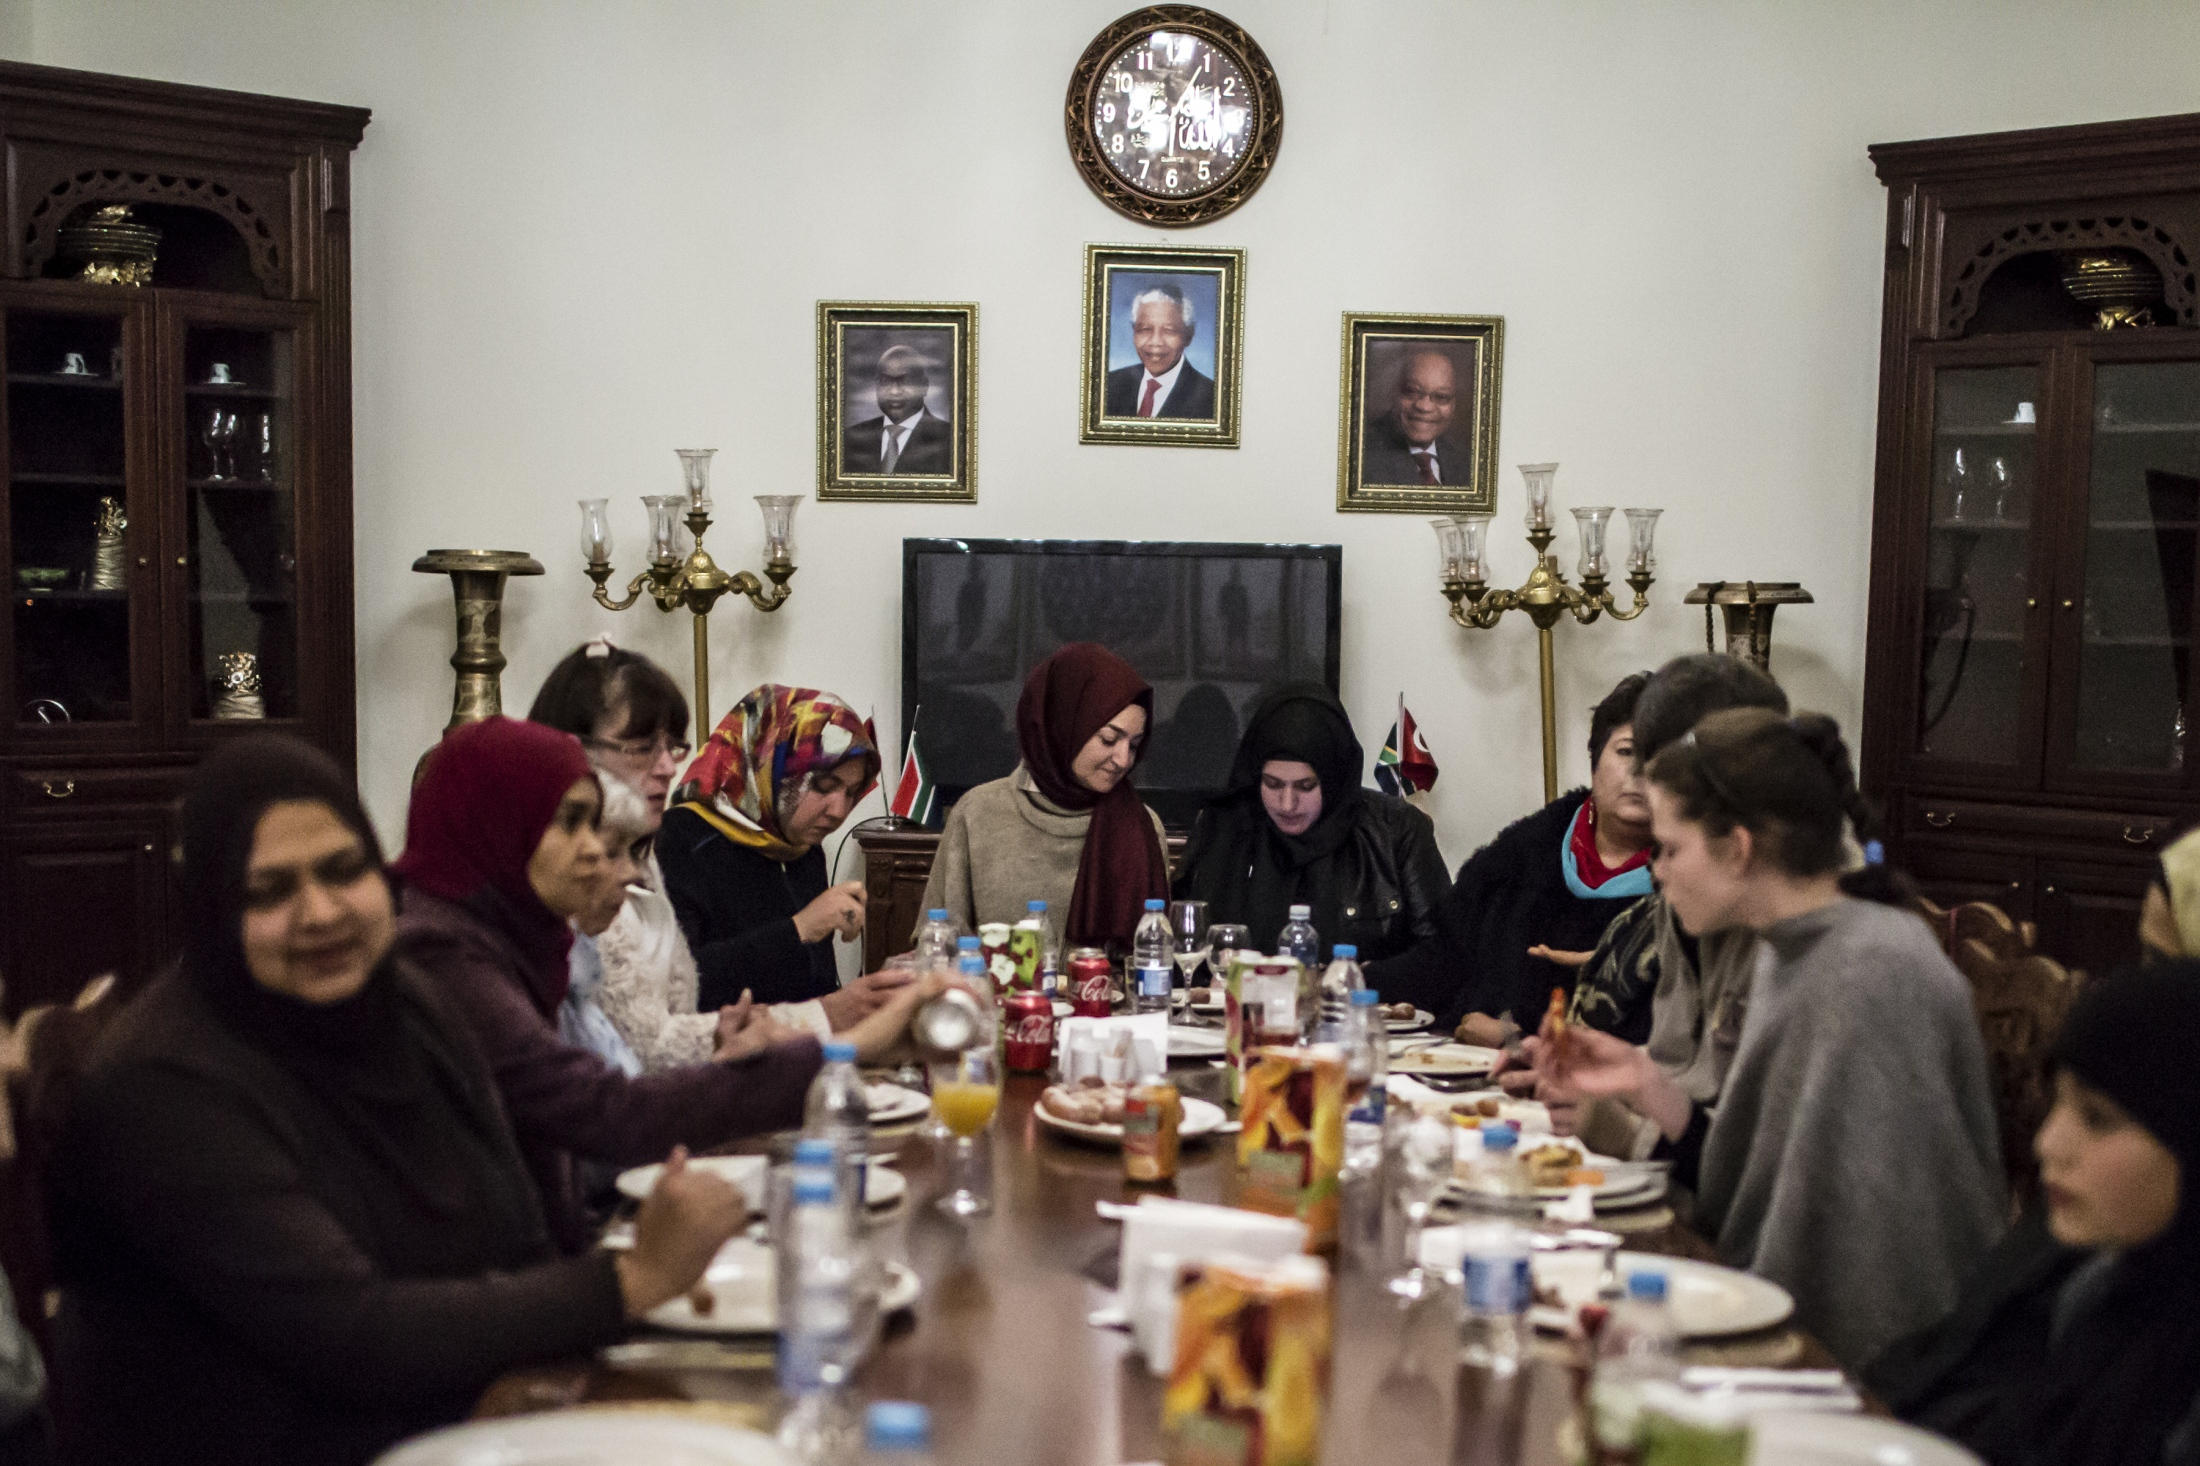 A group of women come together to break their fast during the Muslim holy month of fasting, Ramadan, at the Nizamiye Mosque in Johannesburg. The mosque, built by the Turkish community in South Africa, was completed in 2012 and is an adaption of the 16th-century Ottoman Selimiye Mosque which is situated in Erdine, Turkey and it, including the school, museum and shopping complex situated in Midrand is a significant marking of the Turkish community's contribution to the South African landscape.  The community also hosts mass iftars (breaking of the fast) every night, hamper and food distributions among other projects for the entire duration of Ramadan.